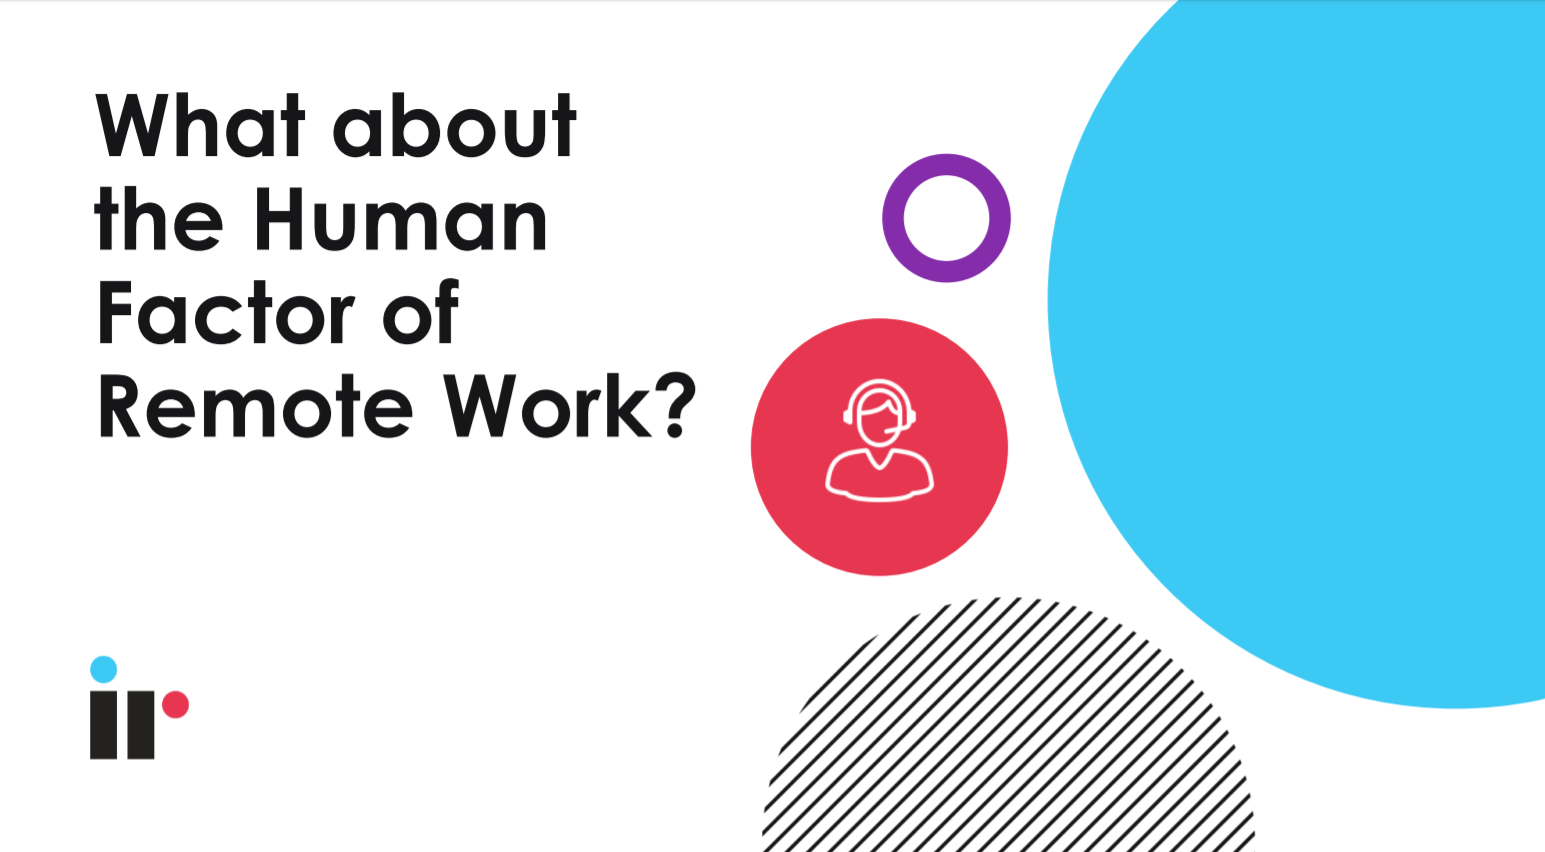 The human factor of remote work